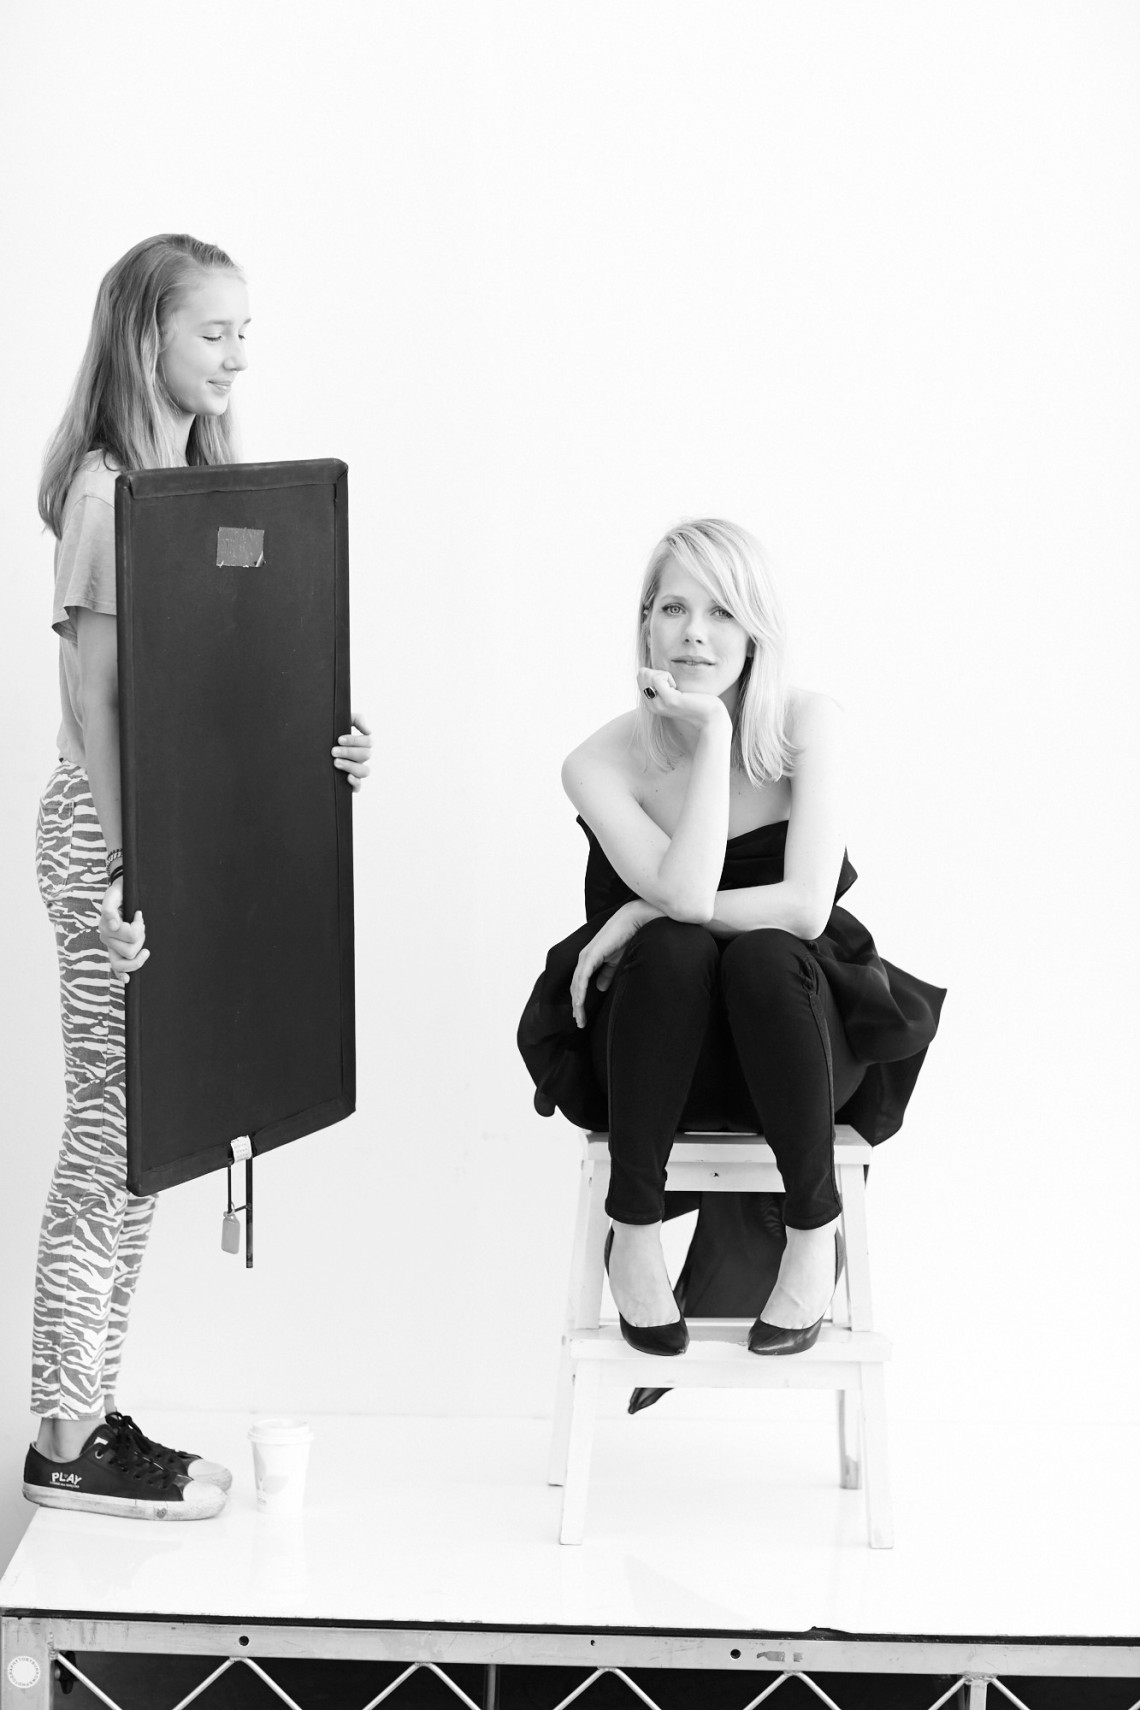 Milla left. Photo shoot and interview with Alyssa McClelland. Photographer Toby Burrows